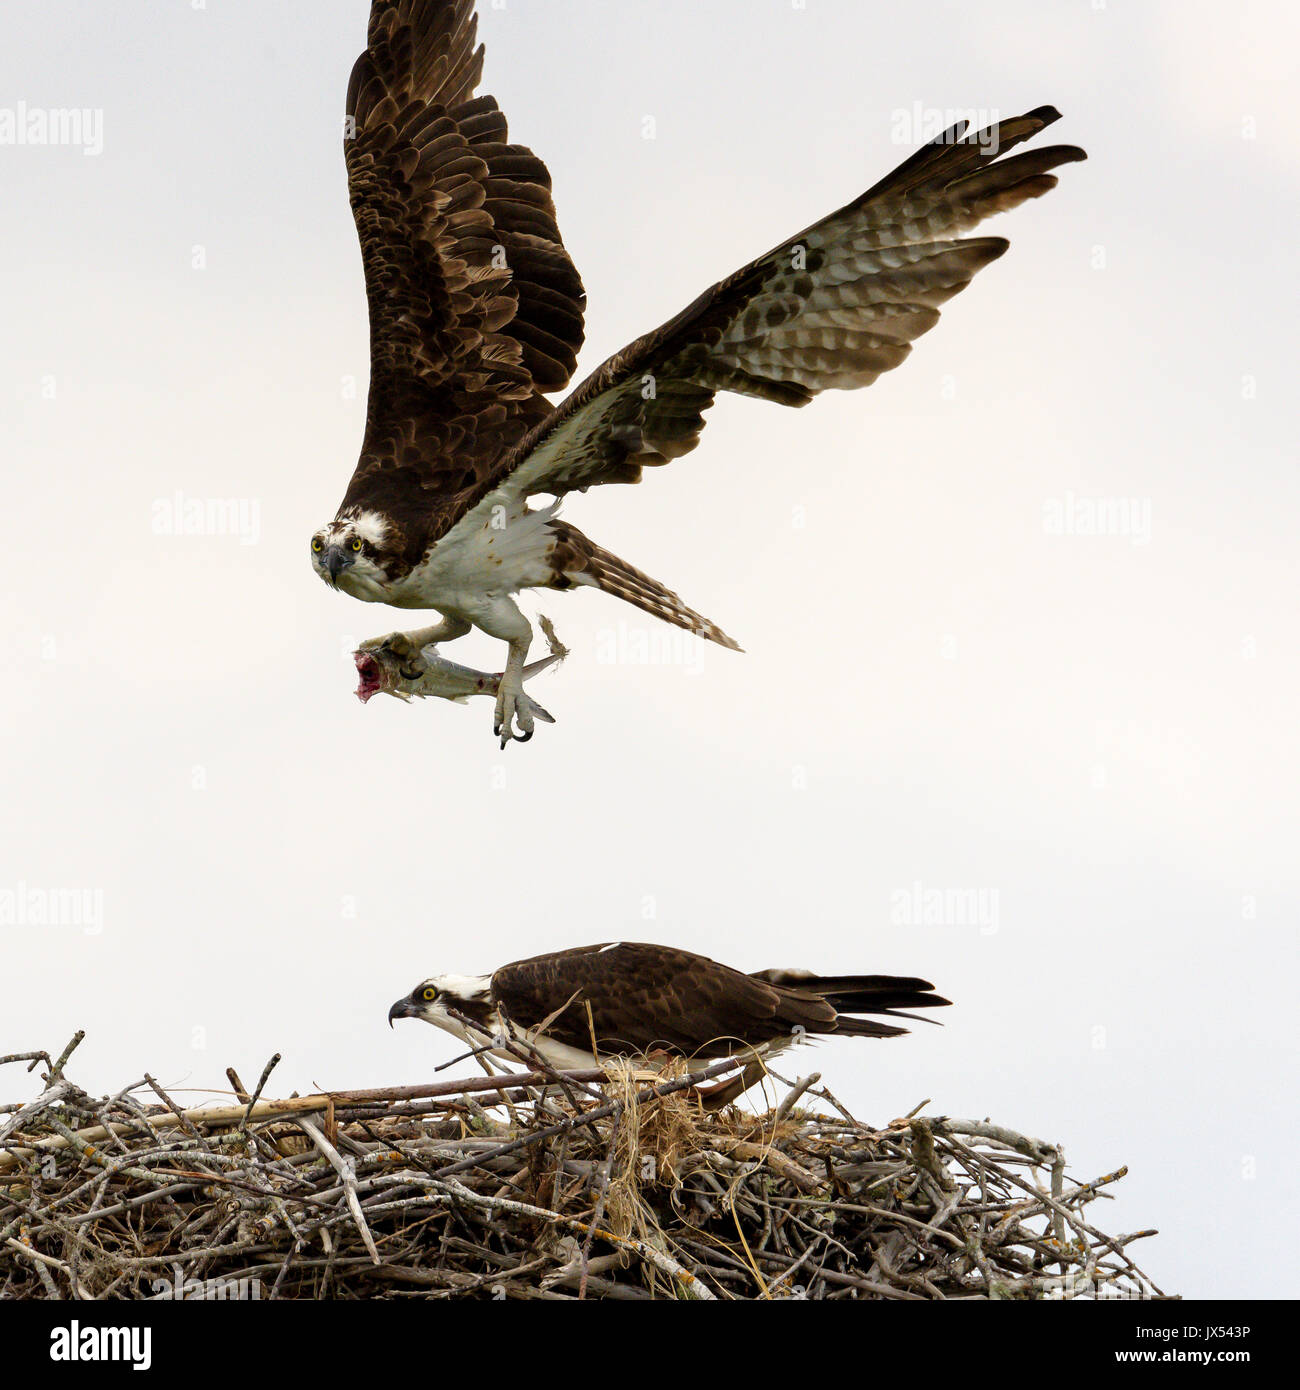 Osprey (Pandion haliaetus) flying from nest with fish, Tigertail Beach, Marco Island, Florida, USA Stock Photo